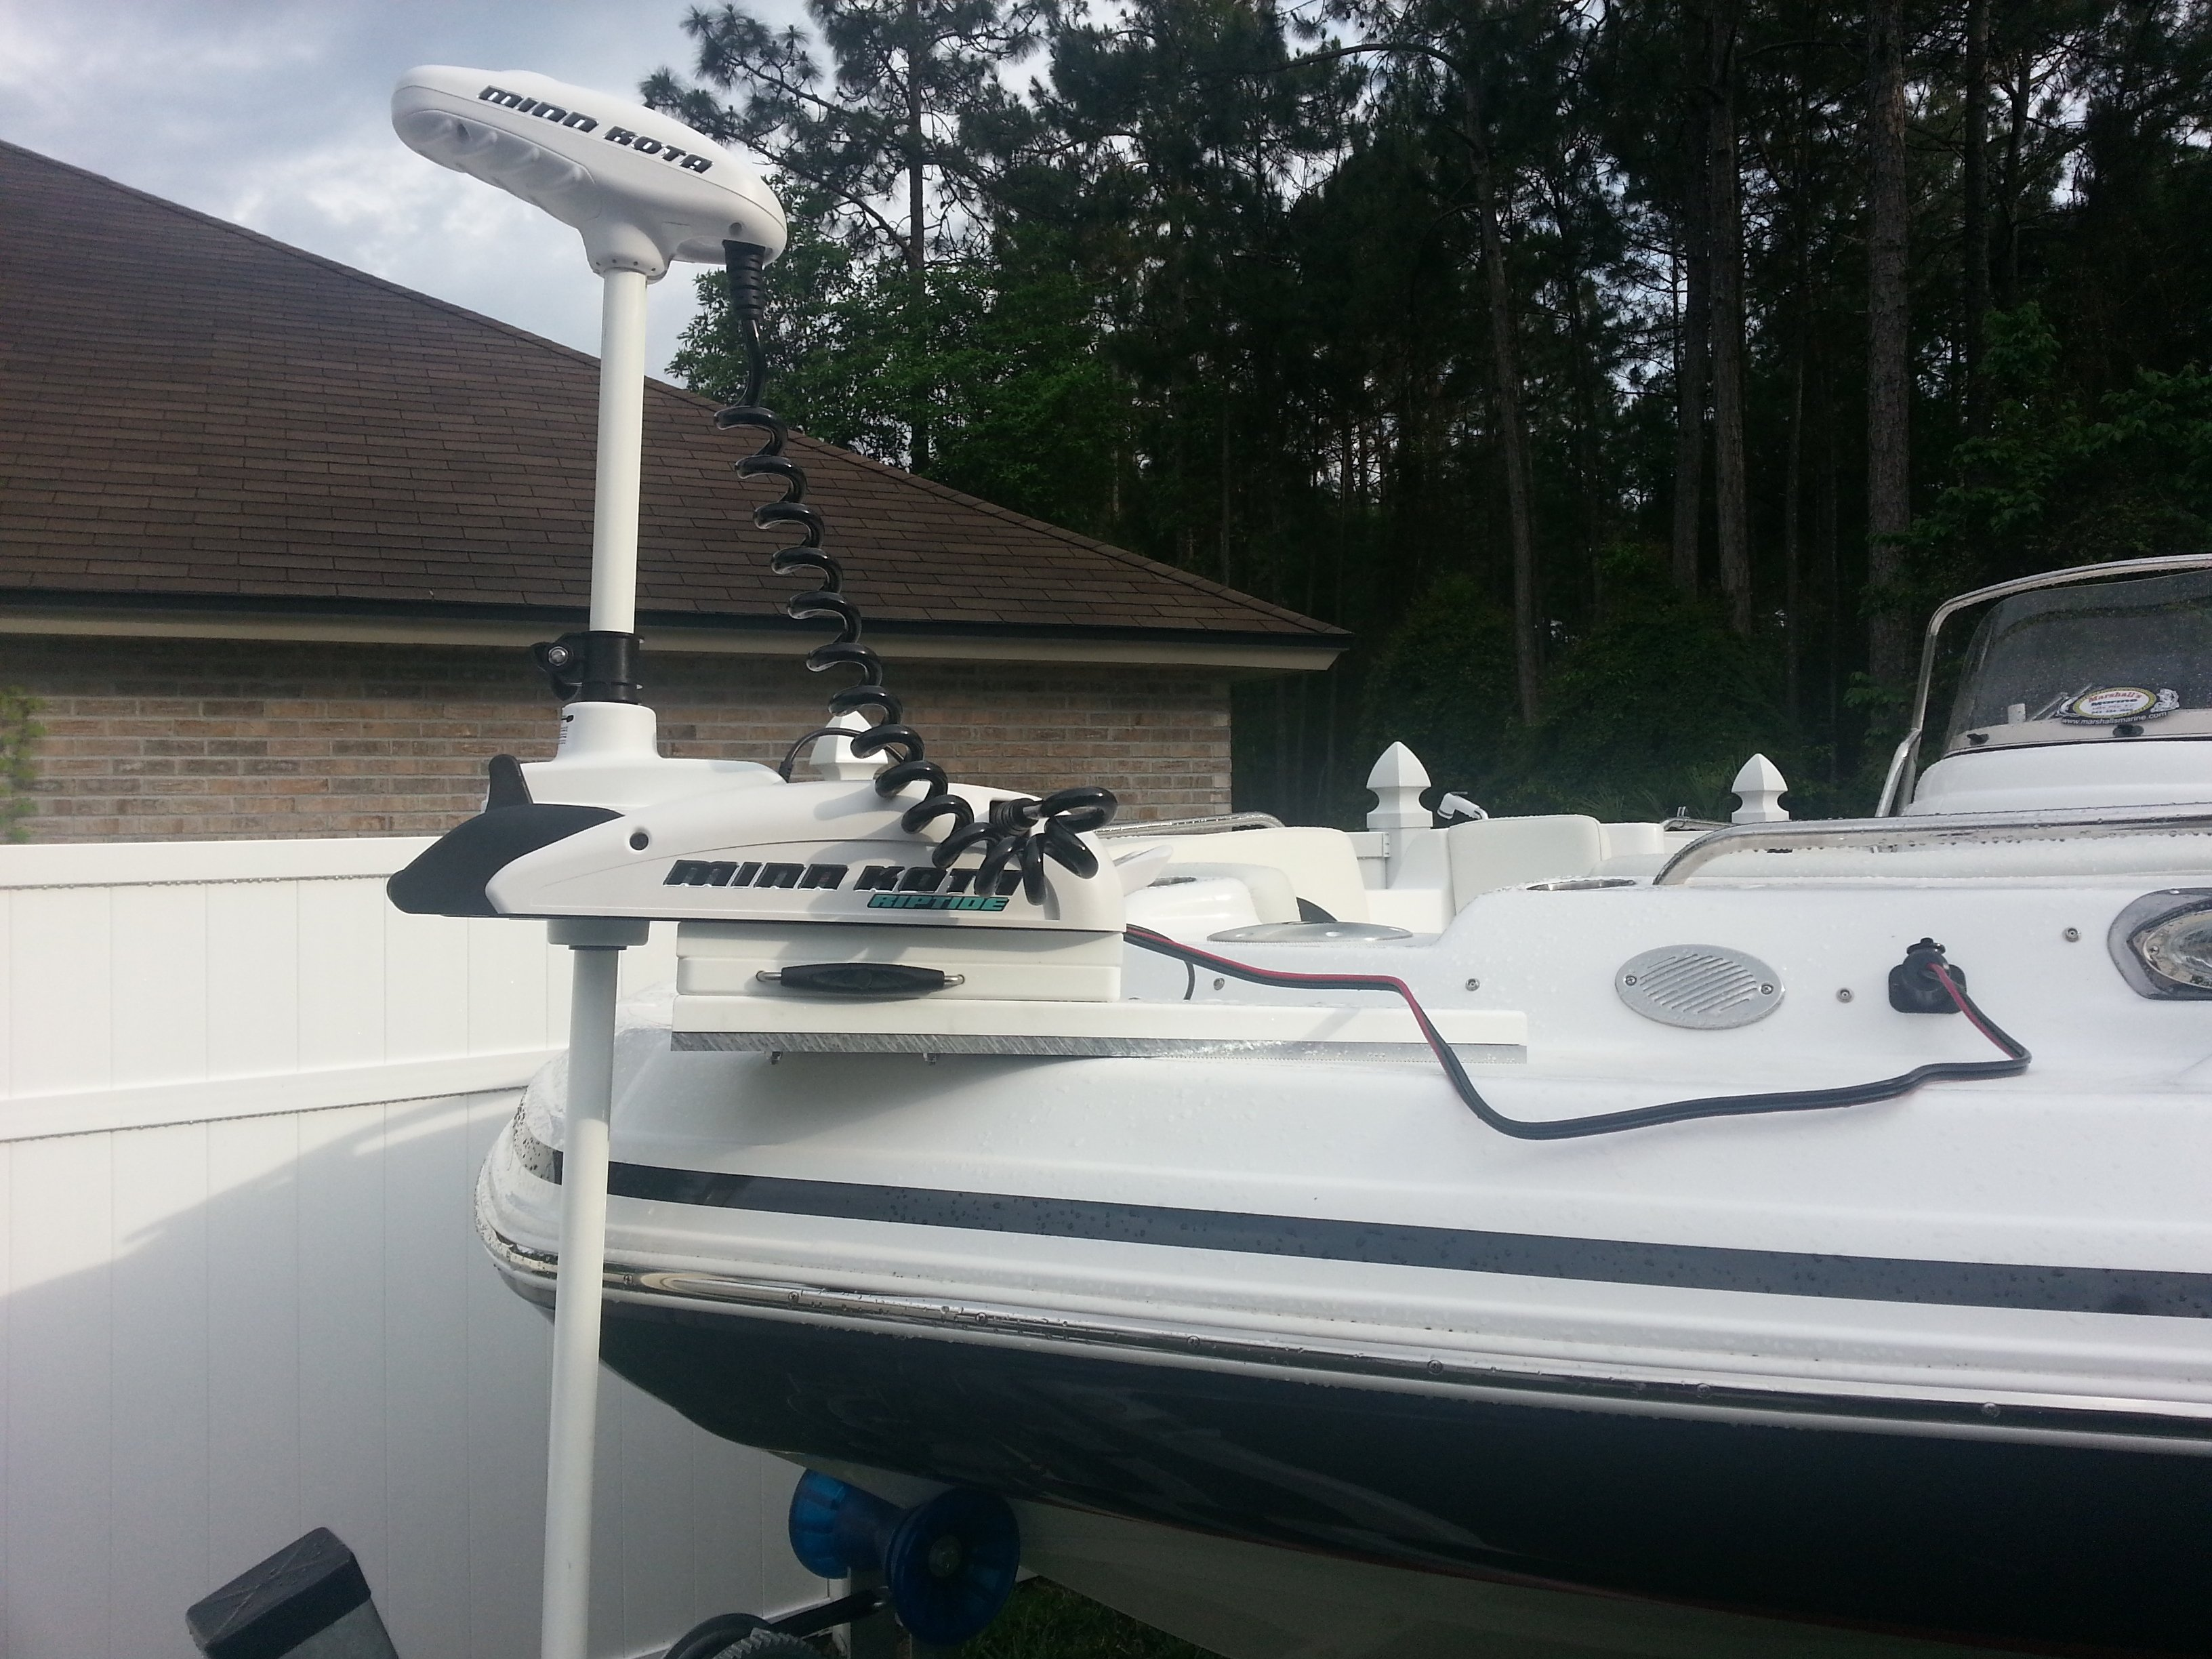 Ss231 trolling motor install discussion and questions for Installing a minn kota riptide trolling motor